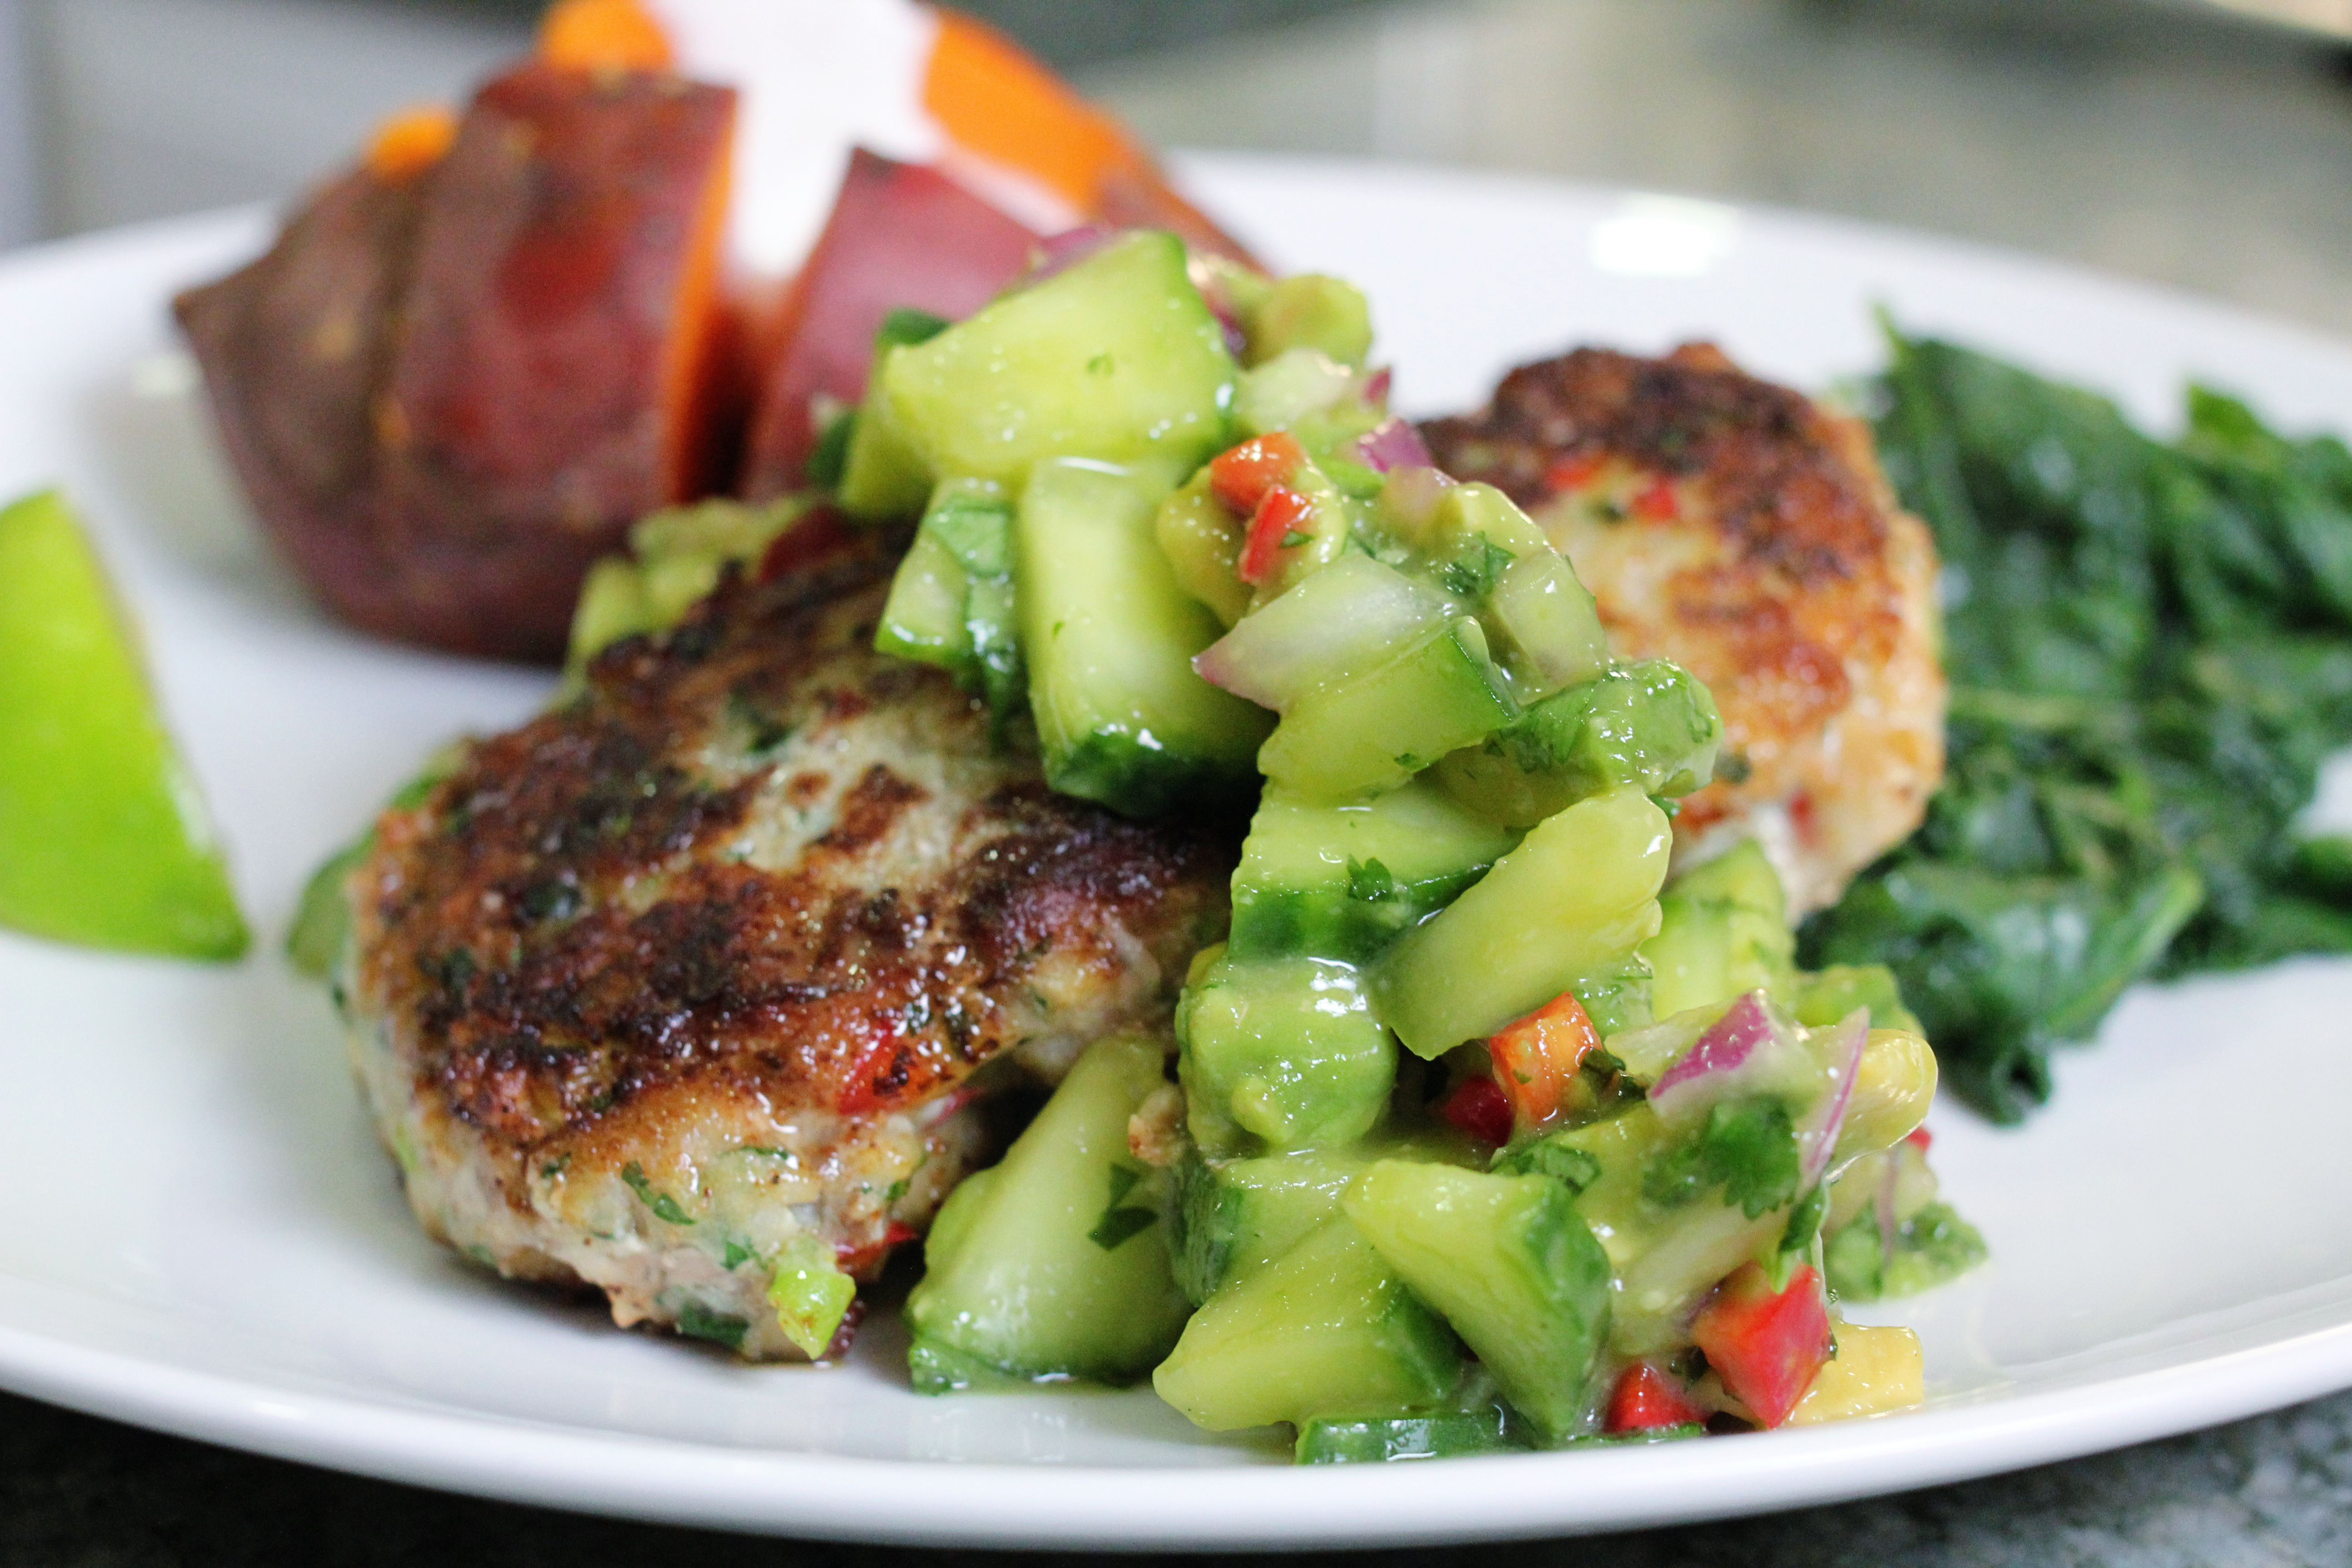 Thai Green Curry Cod Cakes With Avocado Cuber Relish